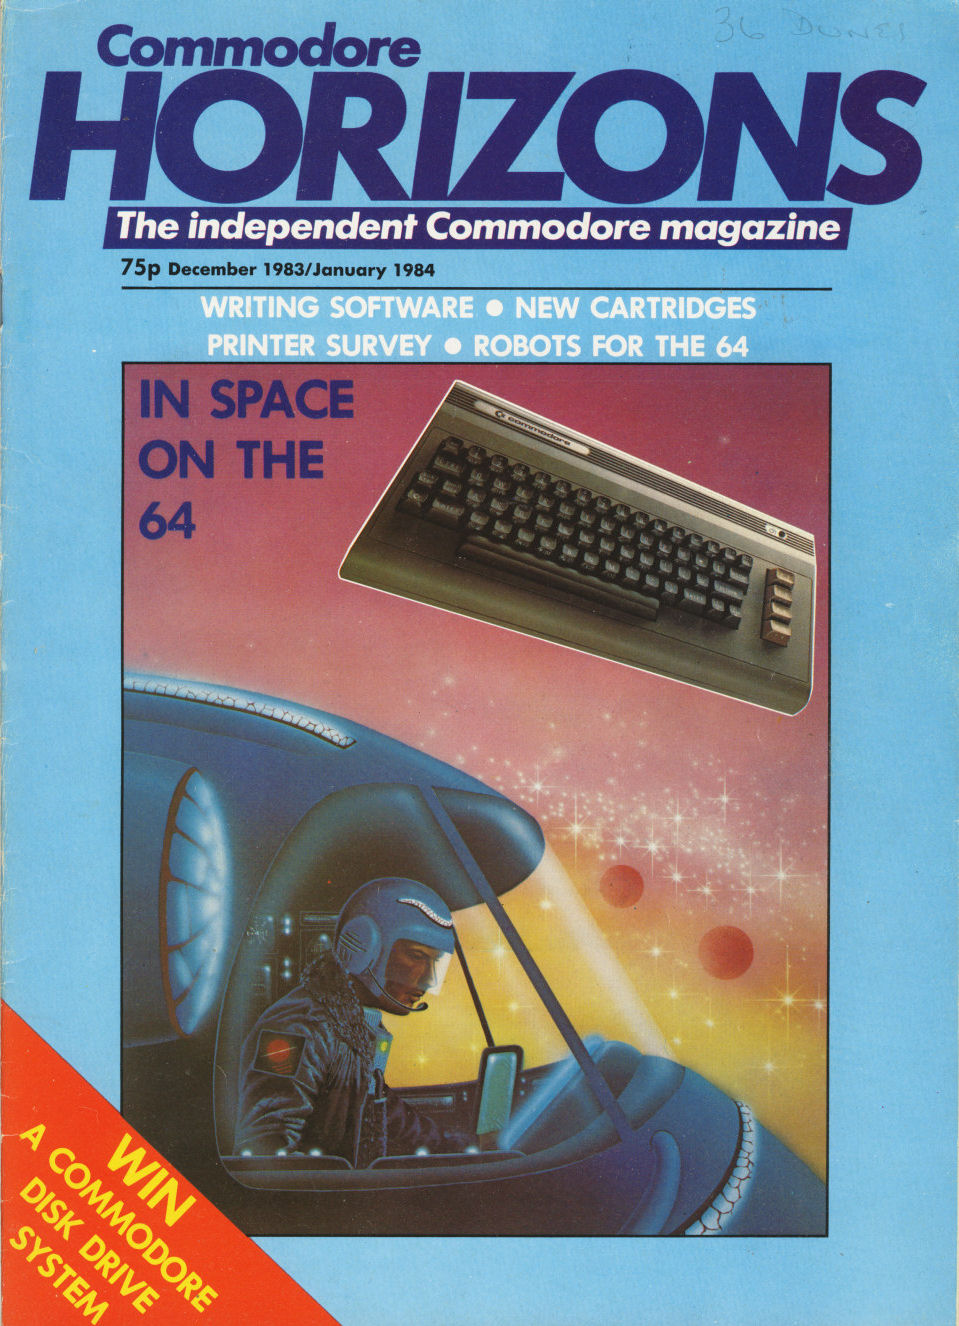 Commodore Horizons Issue 1 | Magazines from the Past Wiki ...